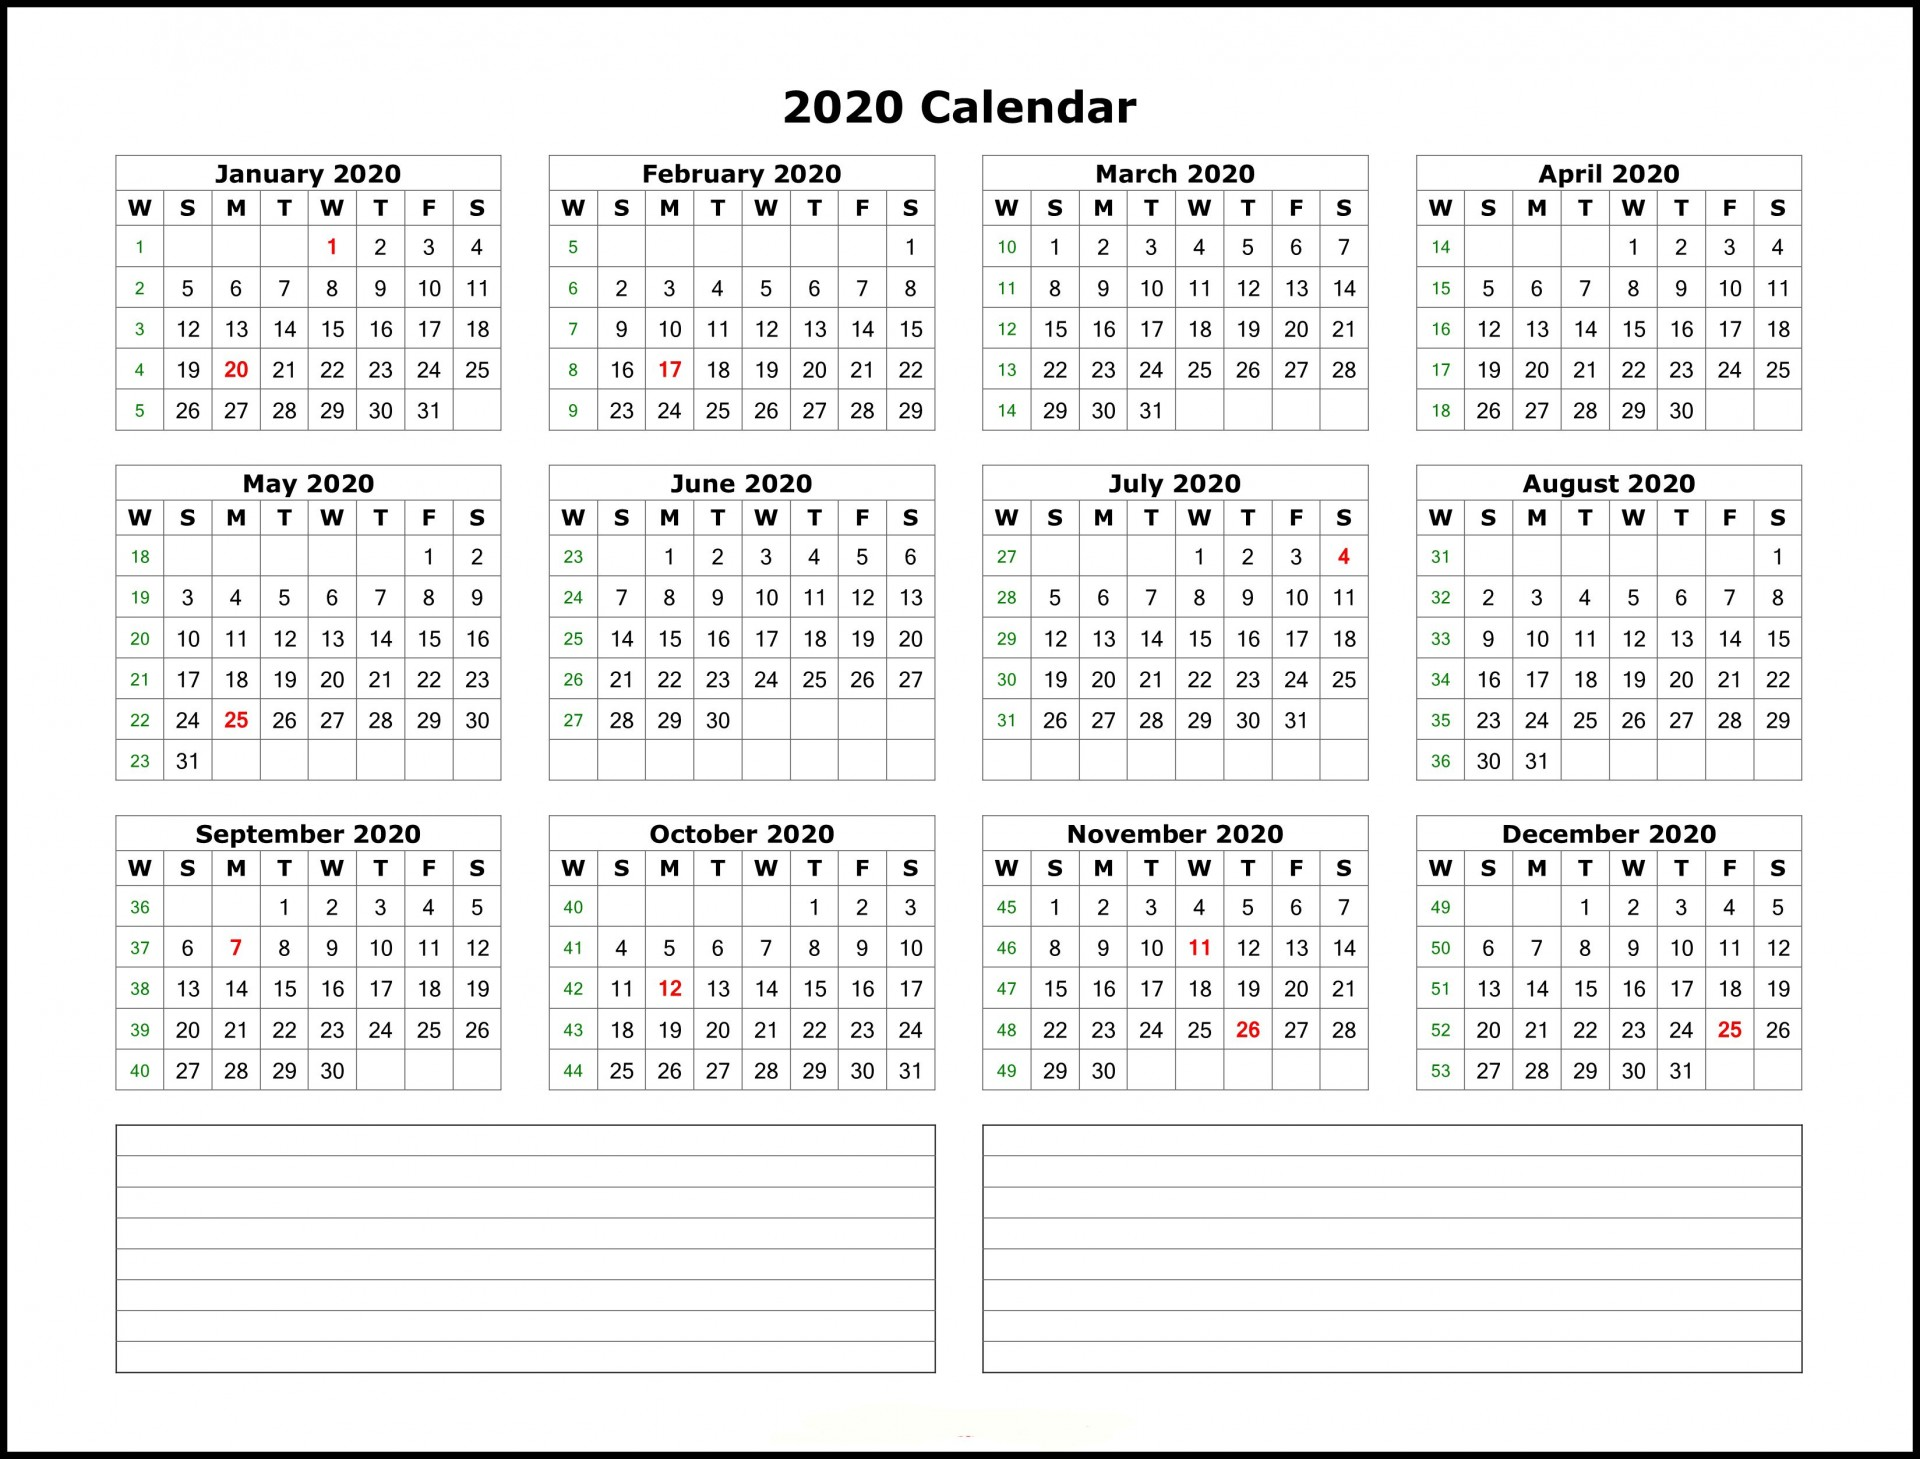 004 Beautiful 2020 Calendar Template Excel Highest Clarity  Microsoft Editable In Format Free Download1920